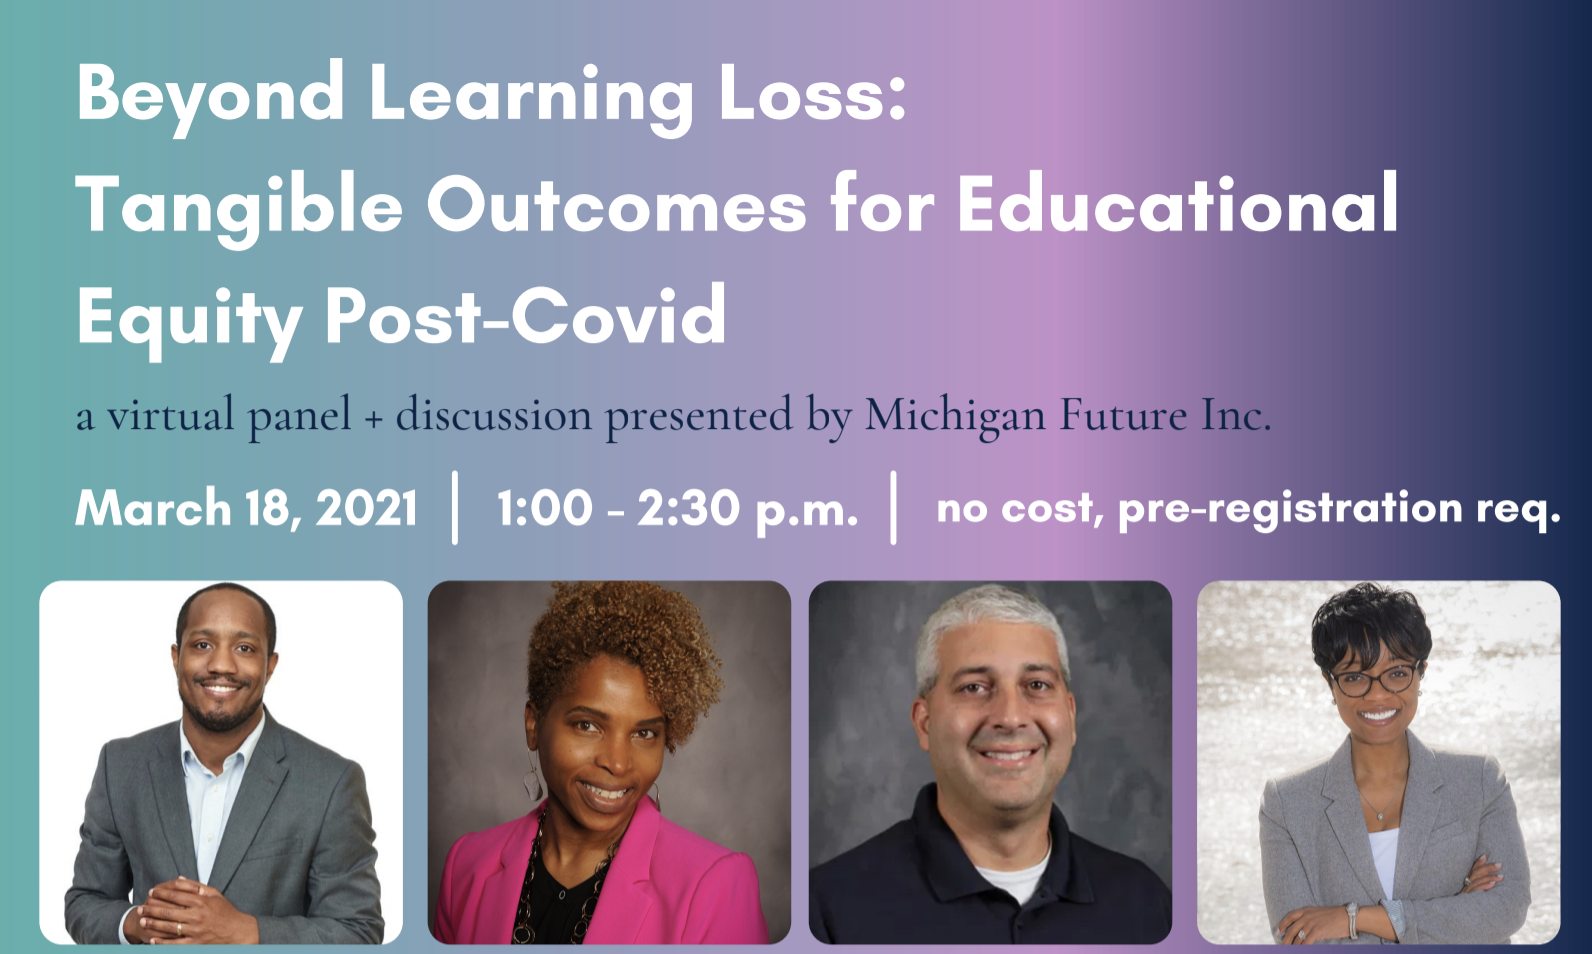 Beyond Learning Loss: Tangible Outcomes For Education Equity Post-Covid